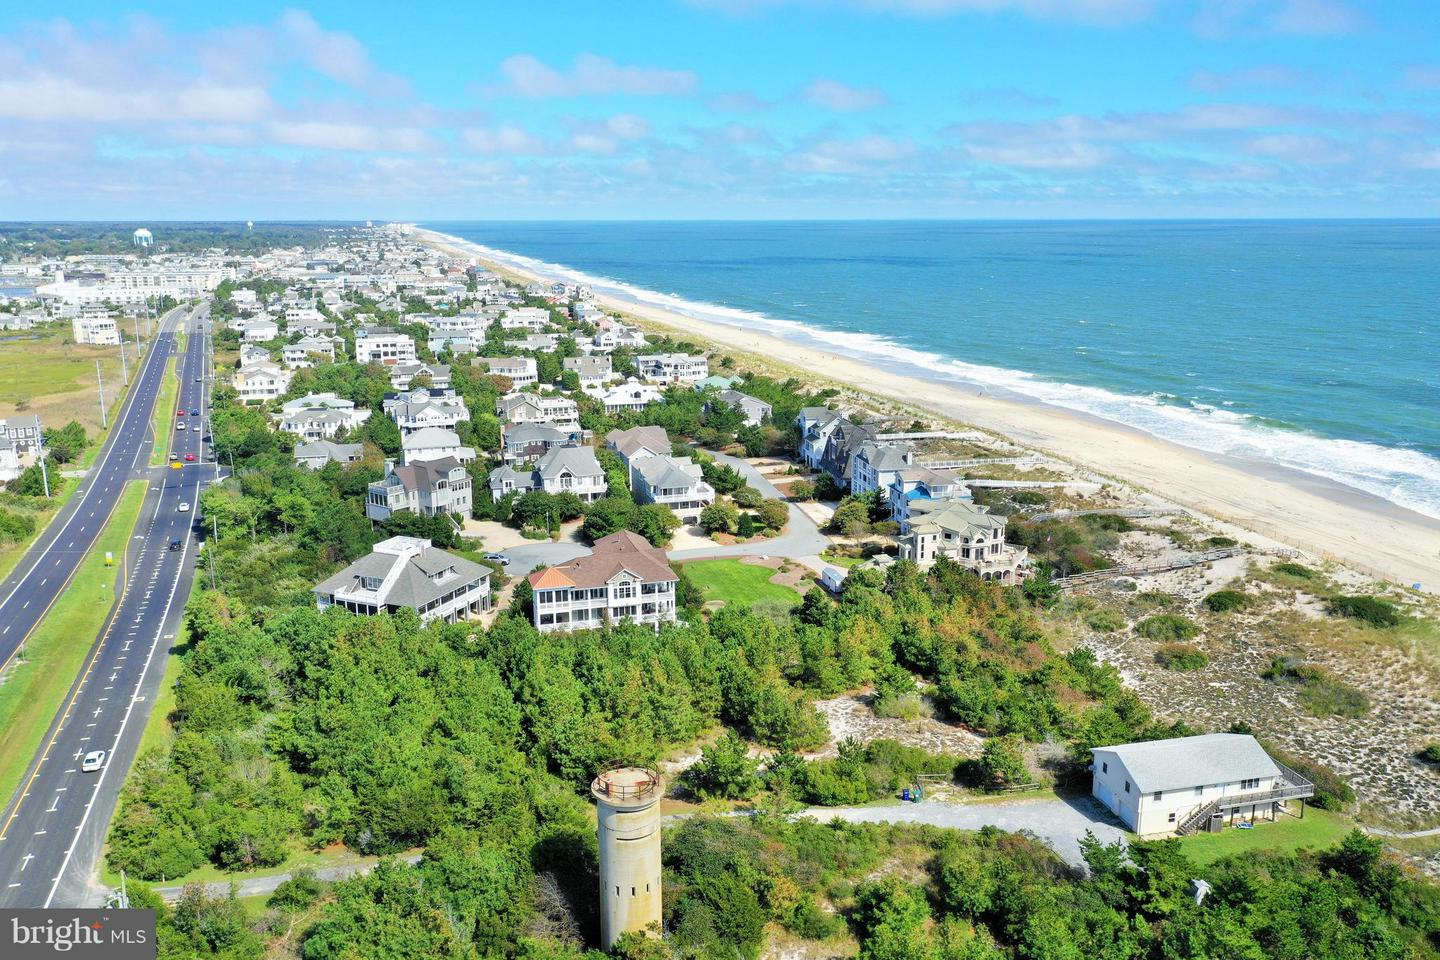 1002293530-300720130827-2018-09-25-15-08-25 31 Hall Ave | Rehoboth Beach, DE Real Estate For Sale | MLS# 1002293530  - 1st Choice Properties